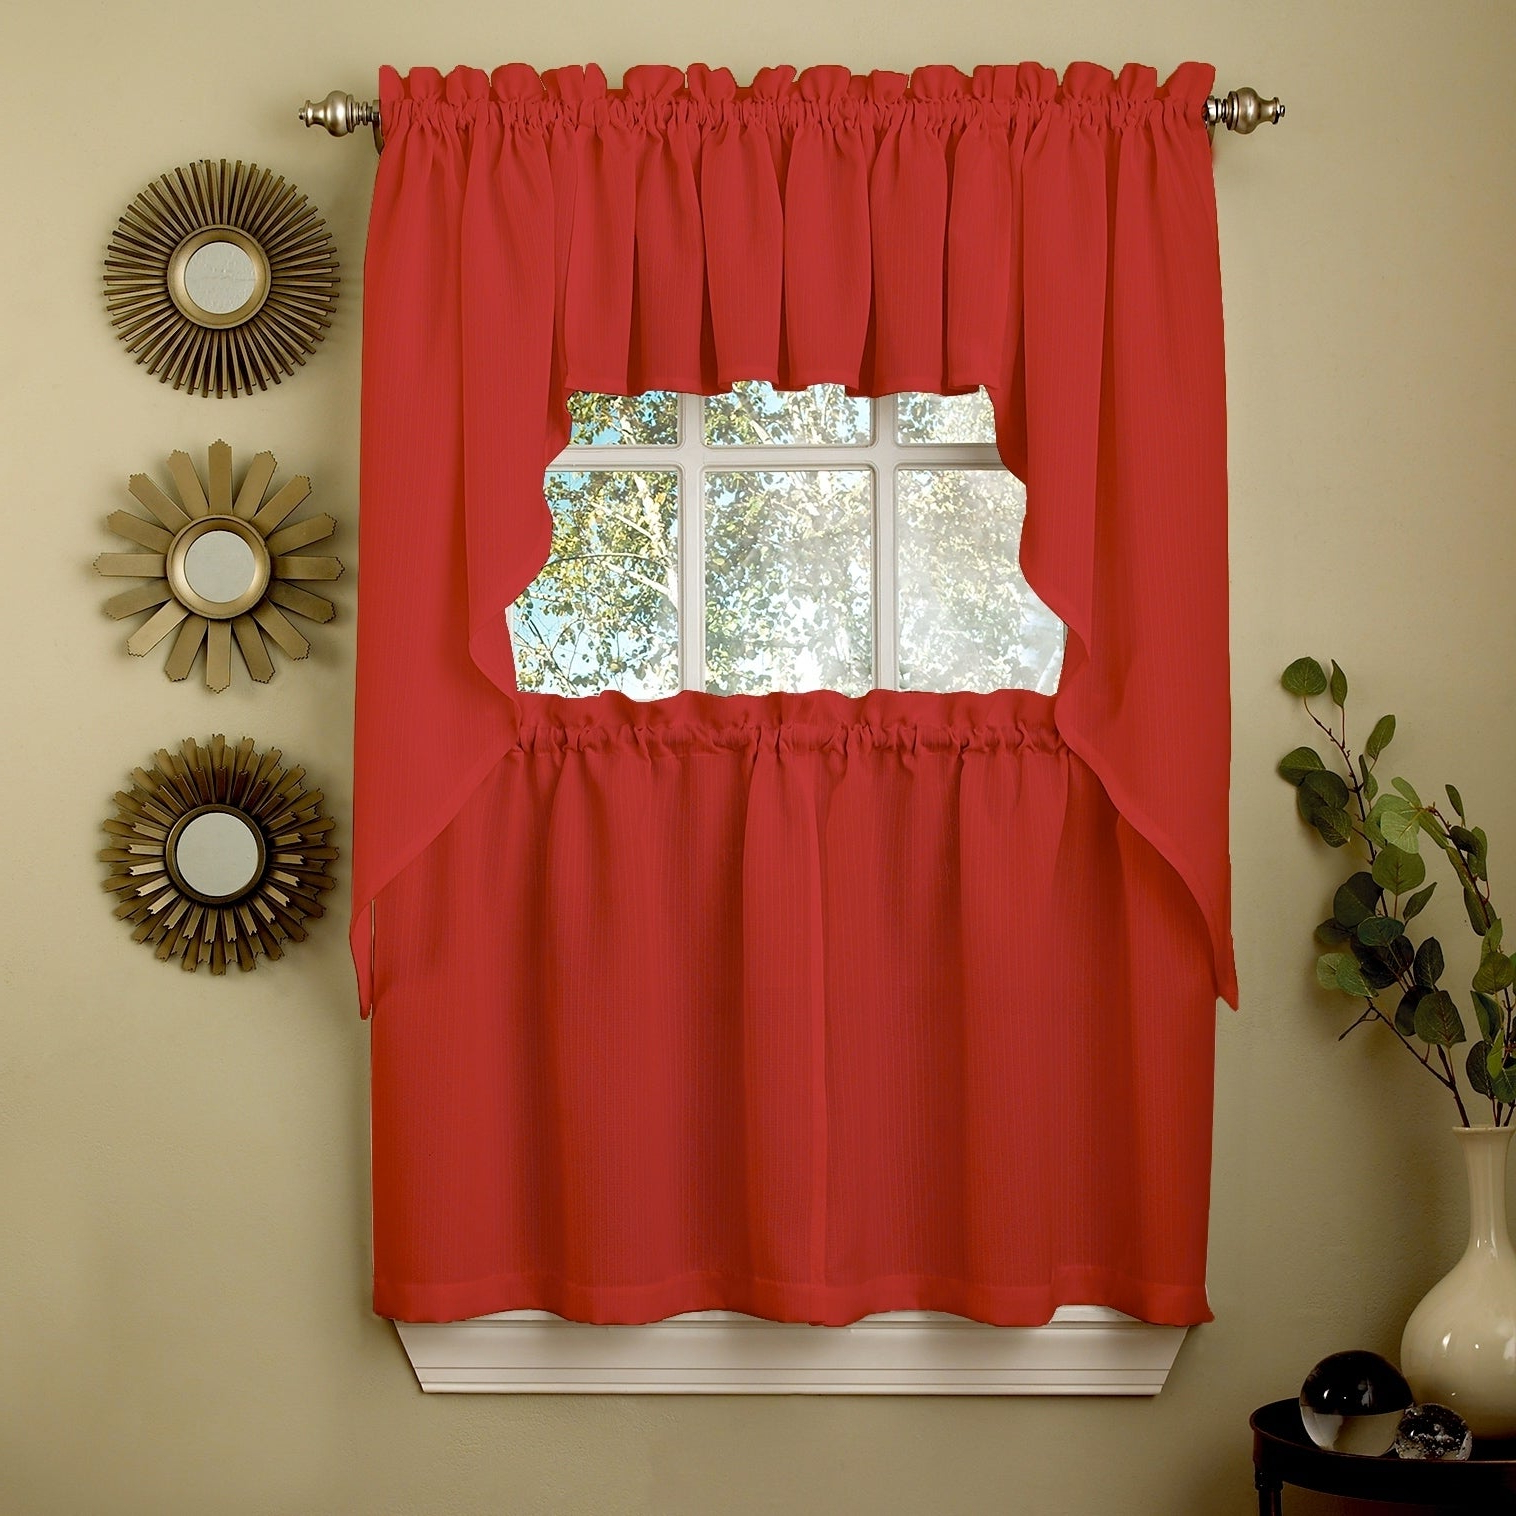 Red Delicious Apple 3 Piece Curtain Tiers Regarding Well Known Opaque Red Ribcord Kitchen Curtain Pieces – Tiers/ Valances/ Swags (View 13 of 20)